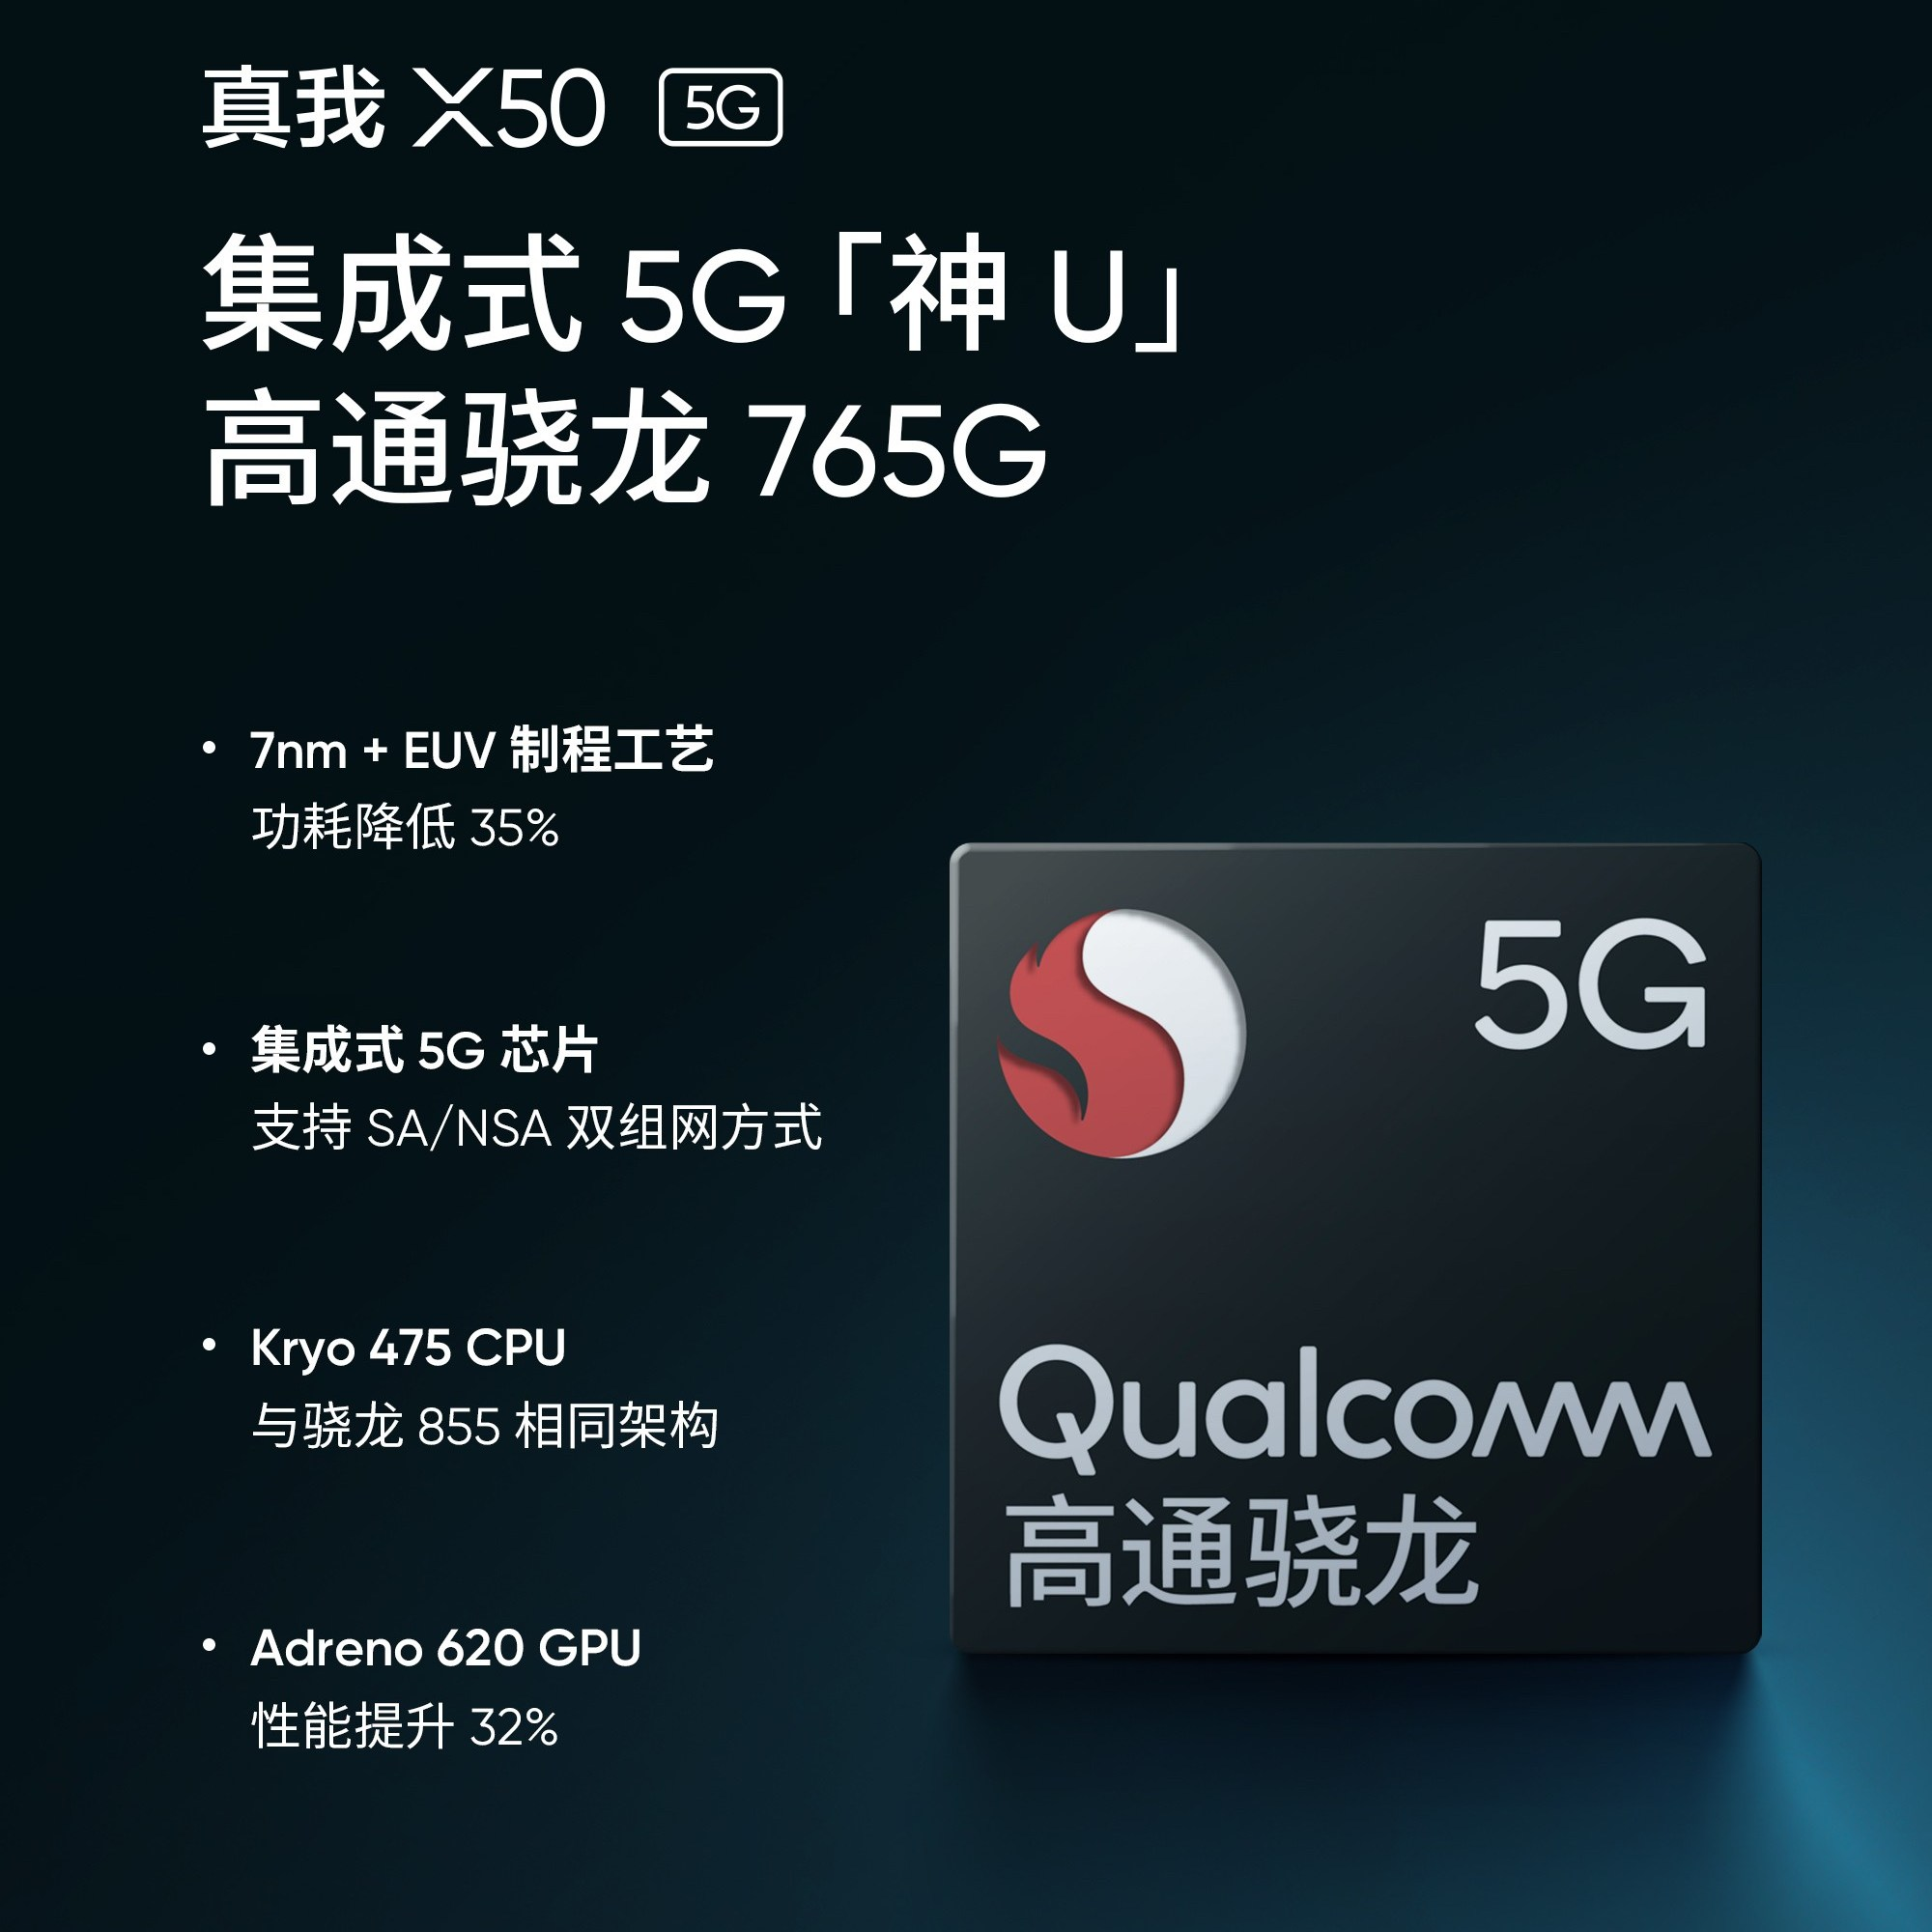 Realme X50 Processor is Snapdragon 765G